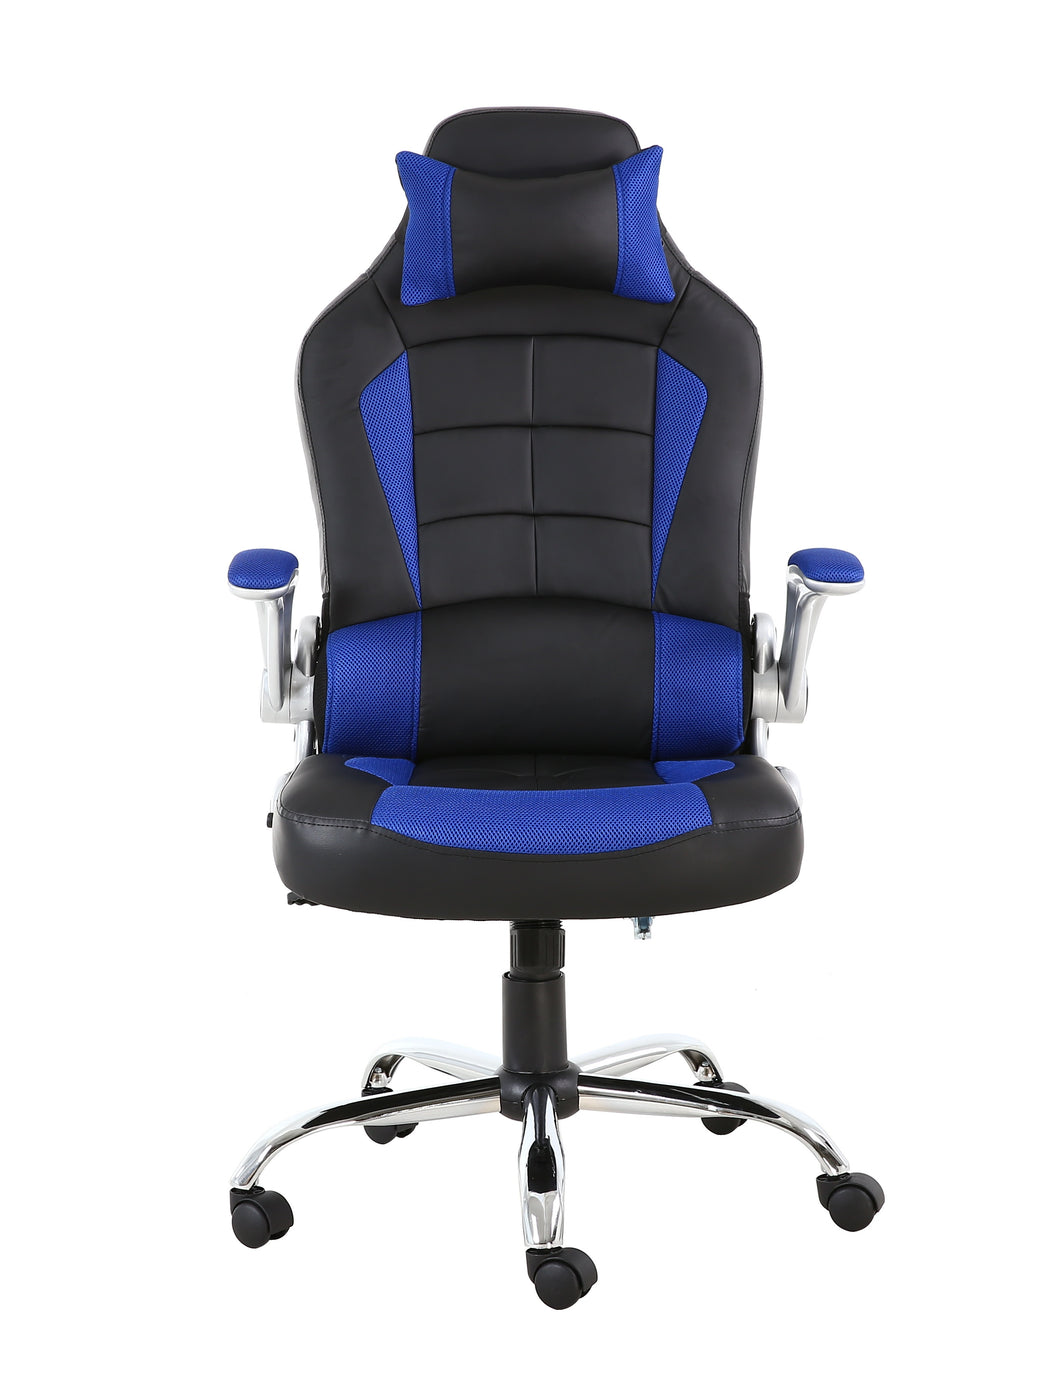 BTEXPERT Leather Office Gaming Chair Napping tilt Pillow Headrest Lumbar Support